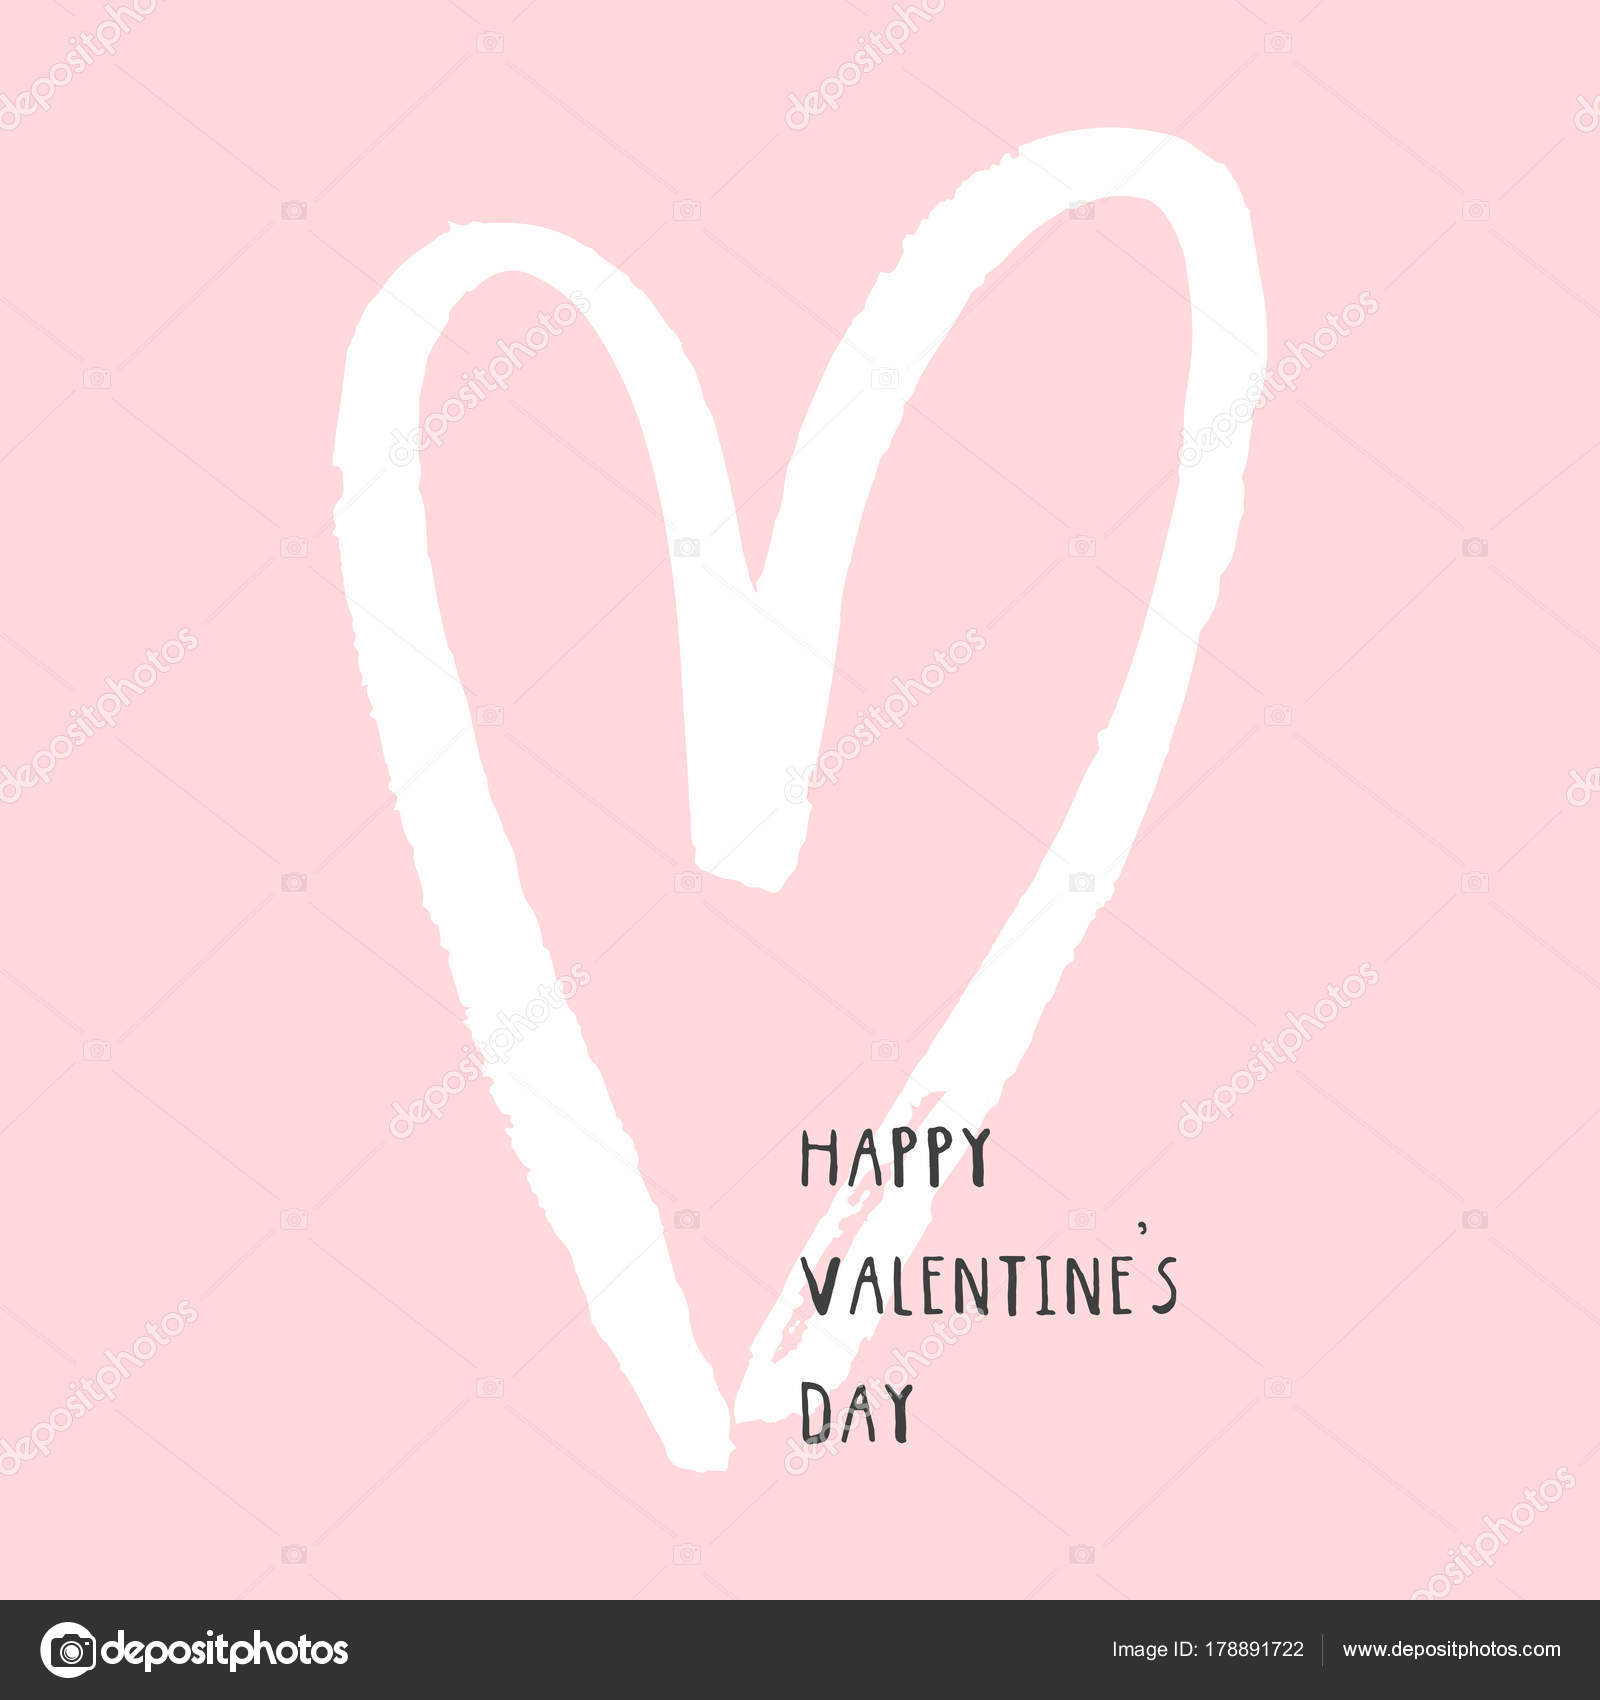 Cute Simple Valentine Day Background Heart Happy Valentine Day Card